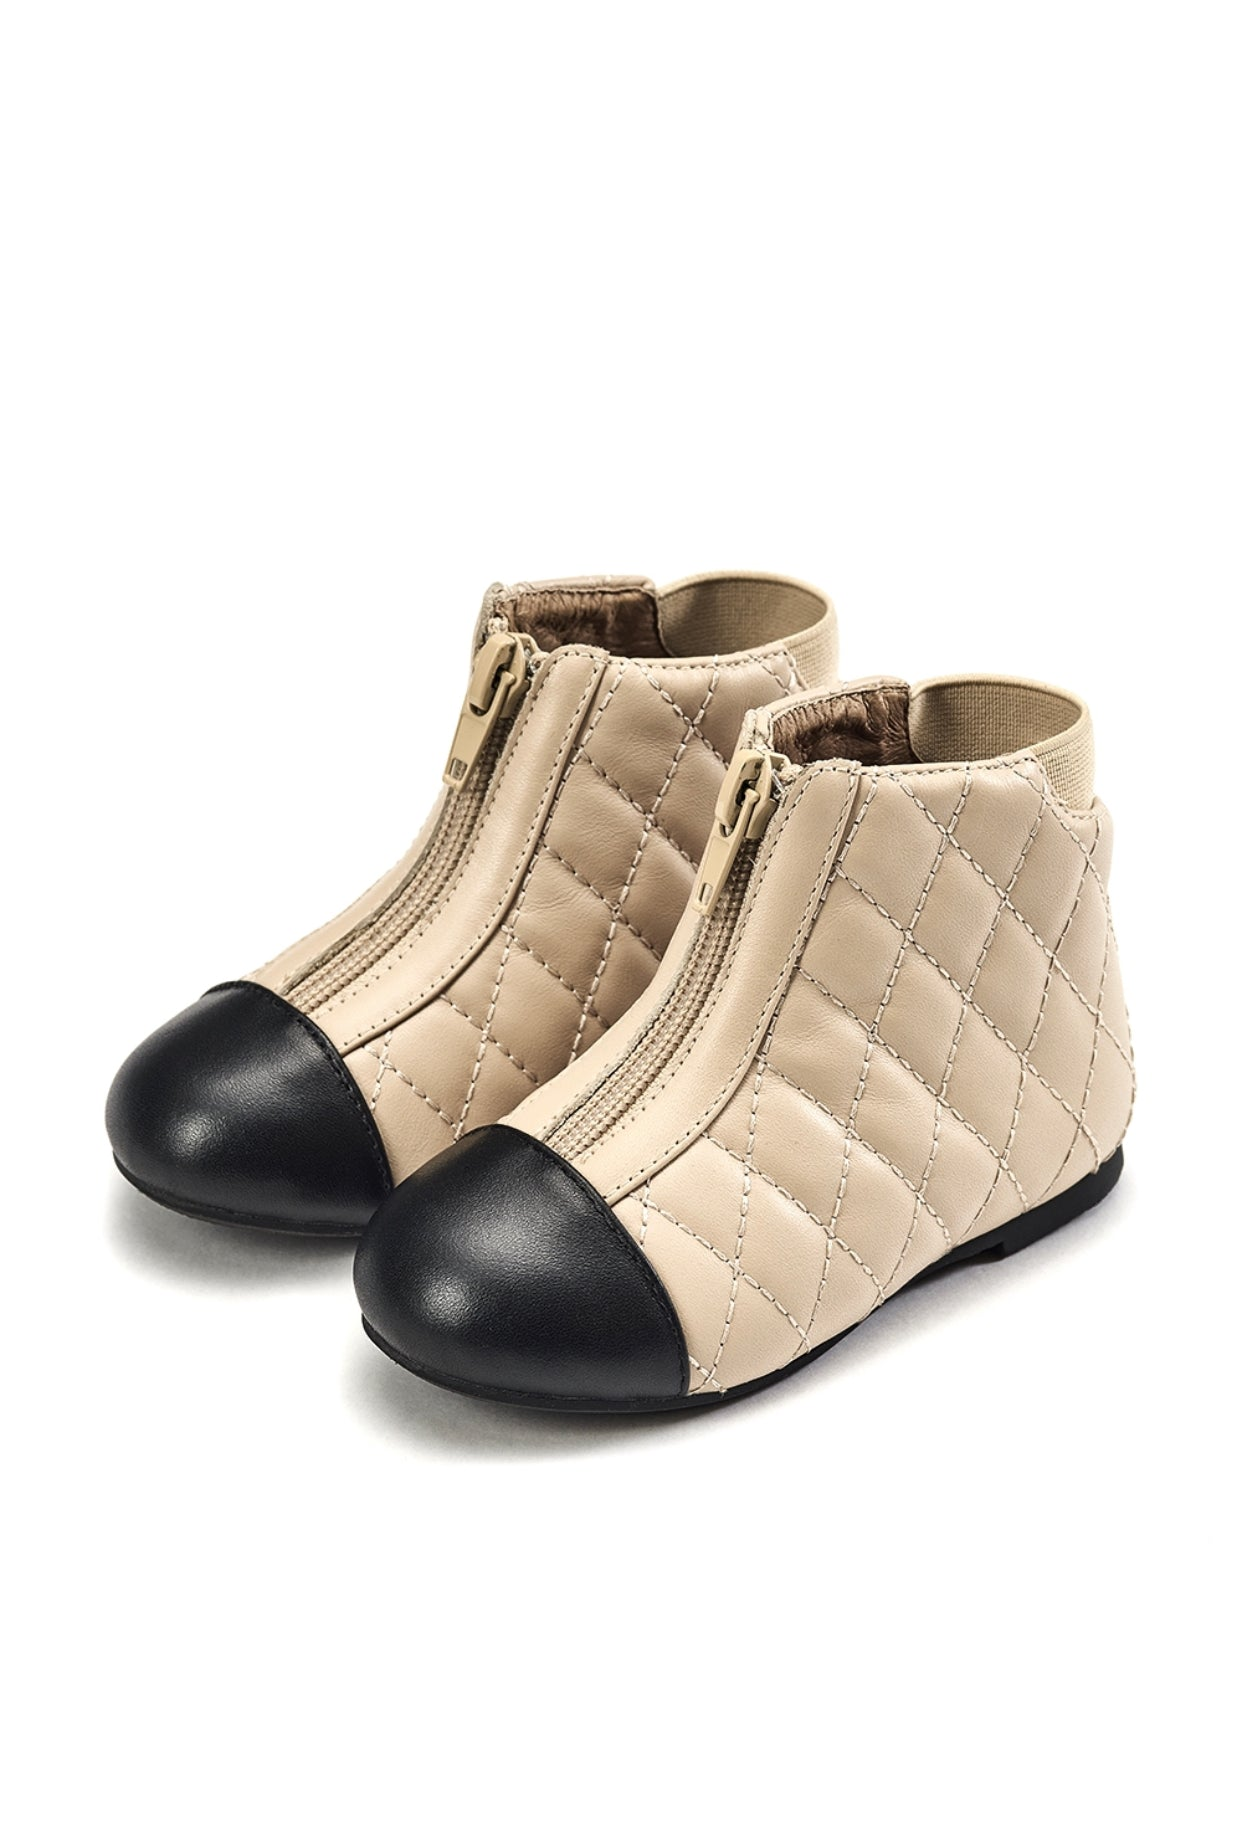 Age of Innocence Nicole 2.0(Wool lining)boots in Beige/Black